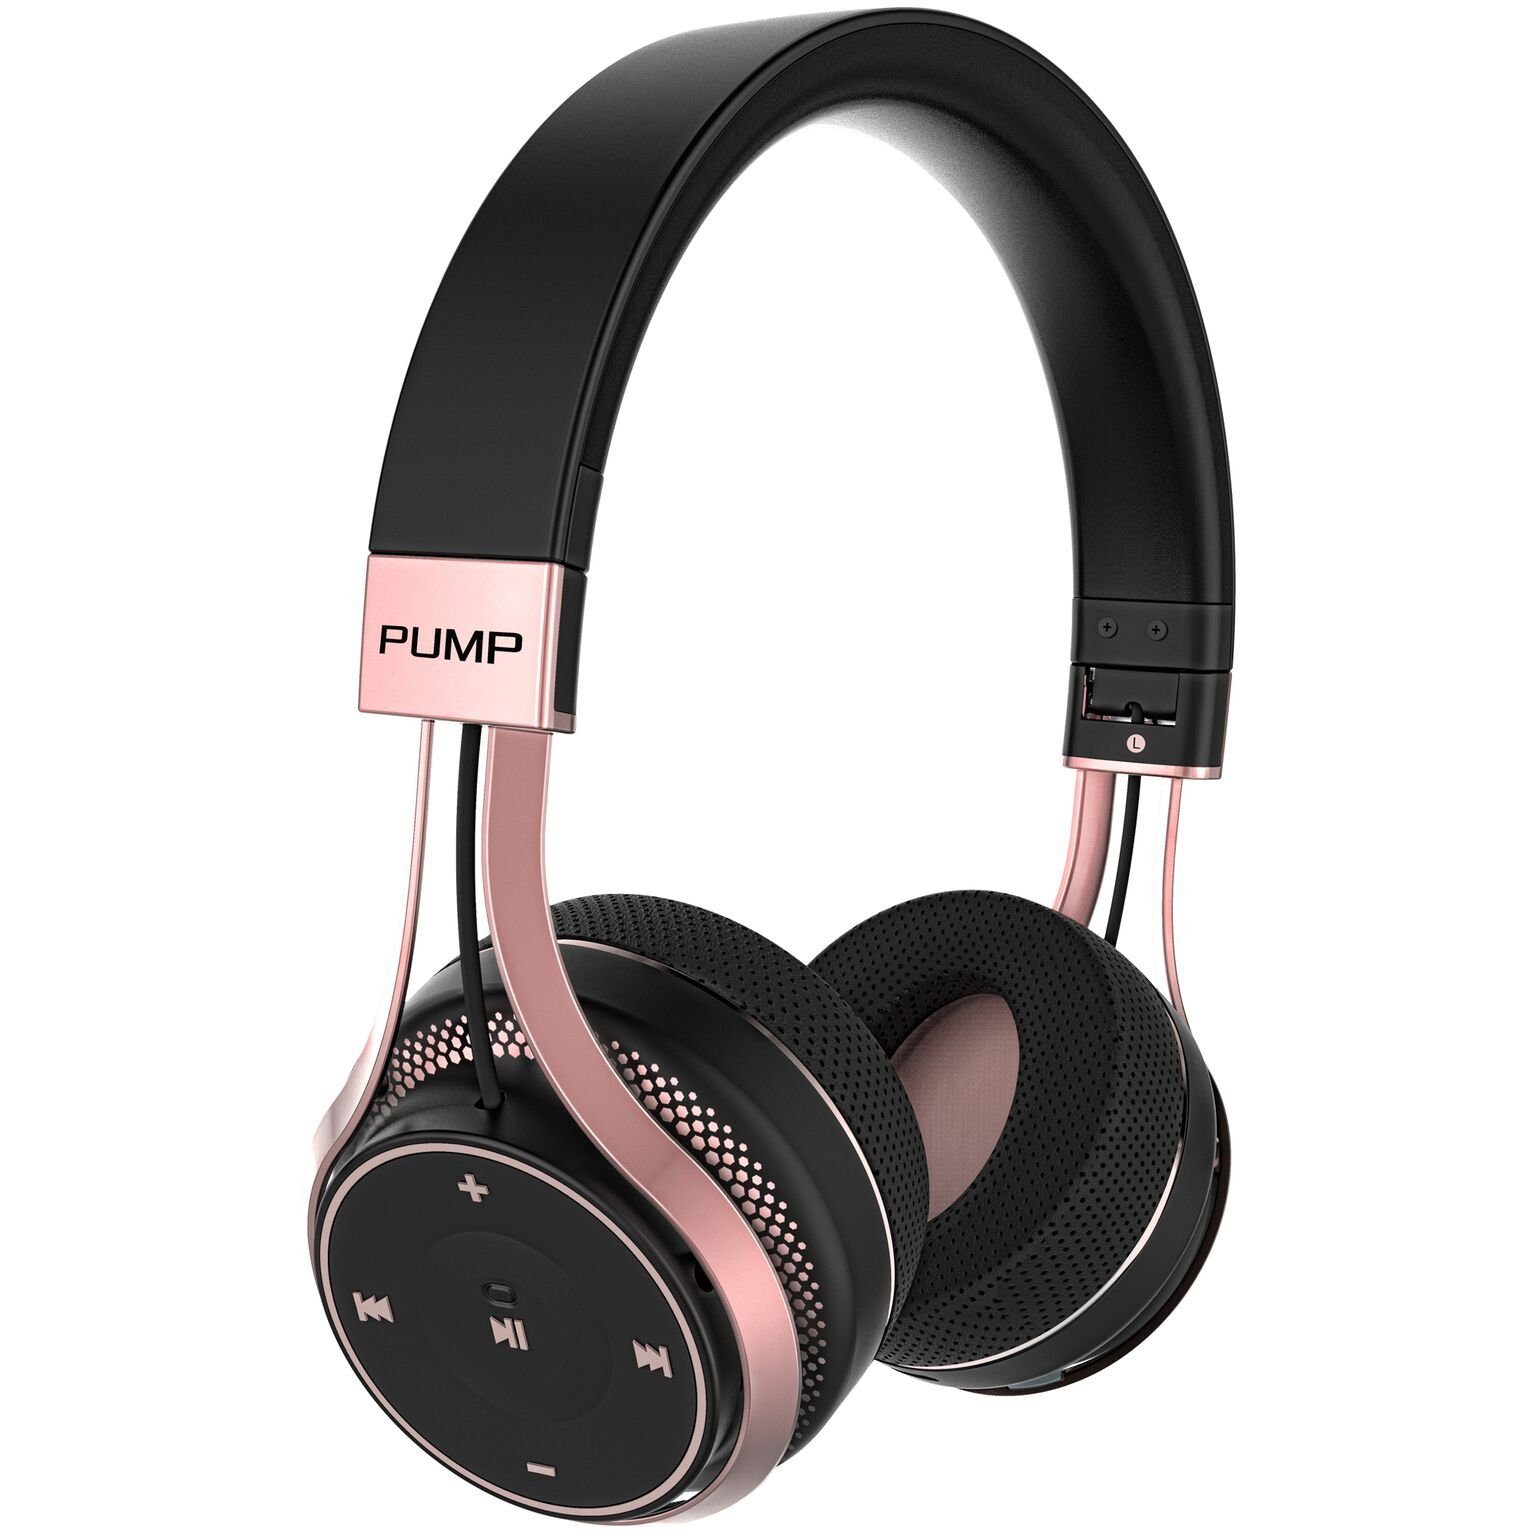 BlueAnt - Pump Soul On Ear Wireless HD Headphones, Stylish, Audio with One Touch Controls (Black Rose Gold) by BlueAnt